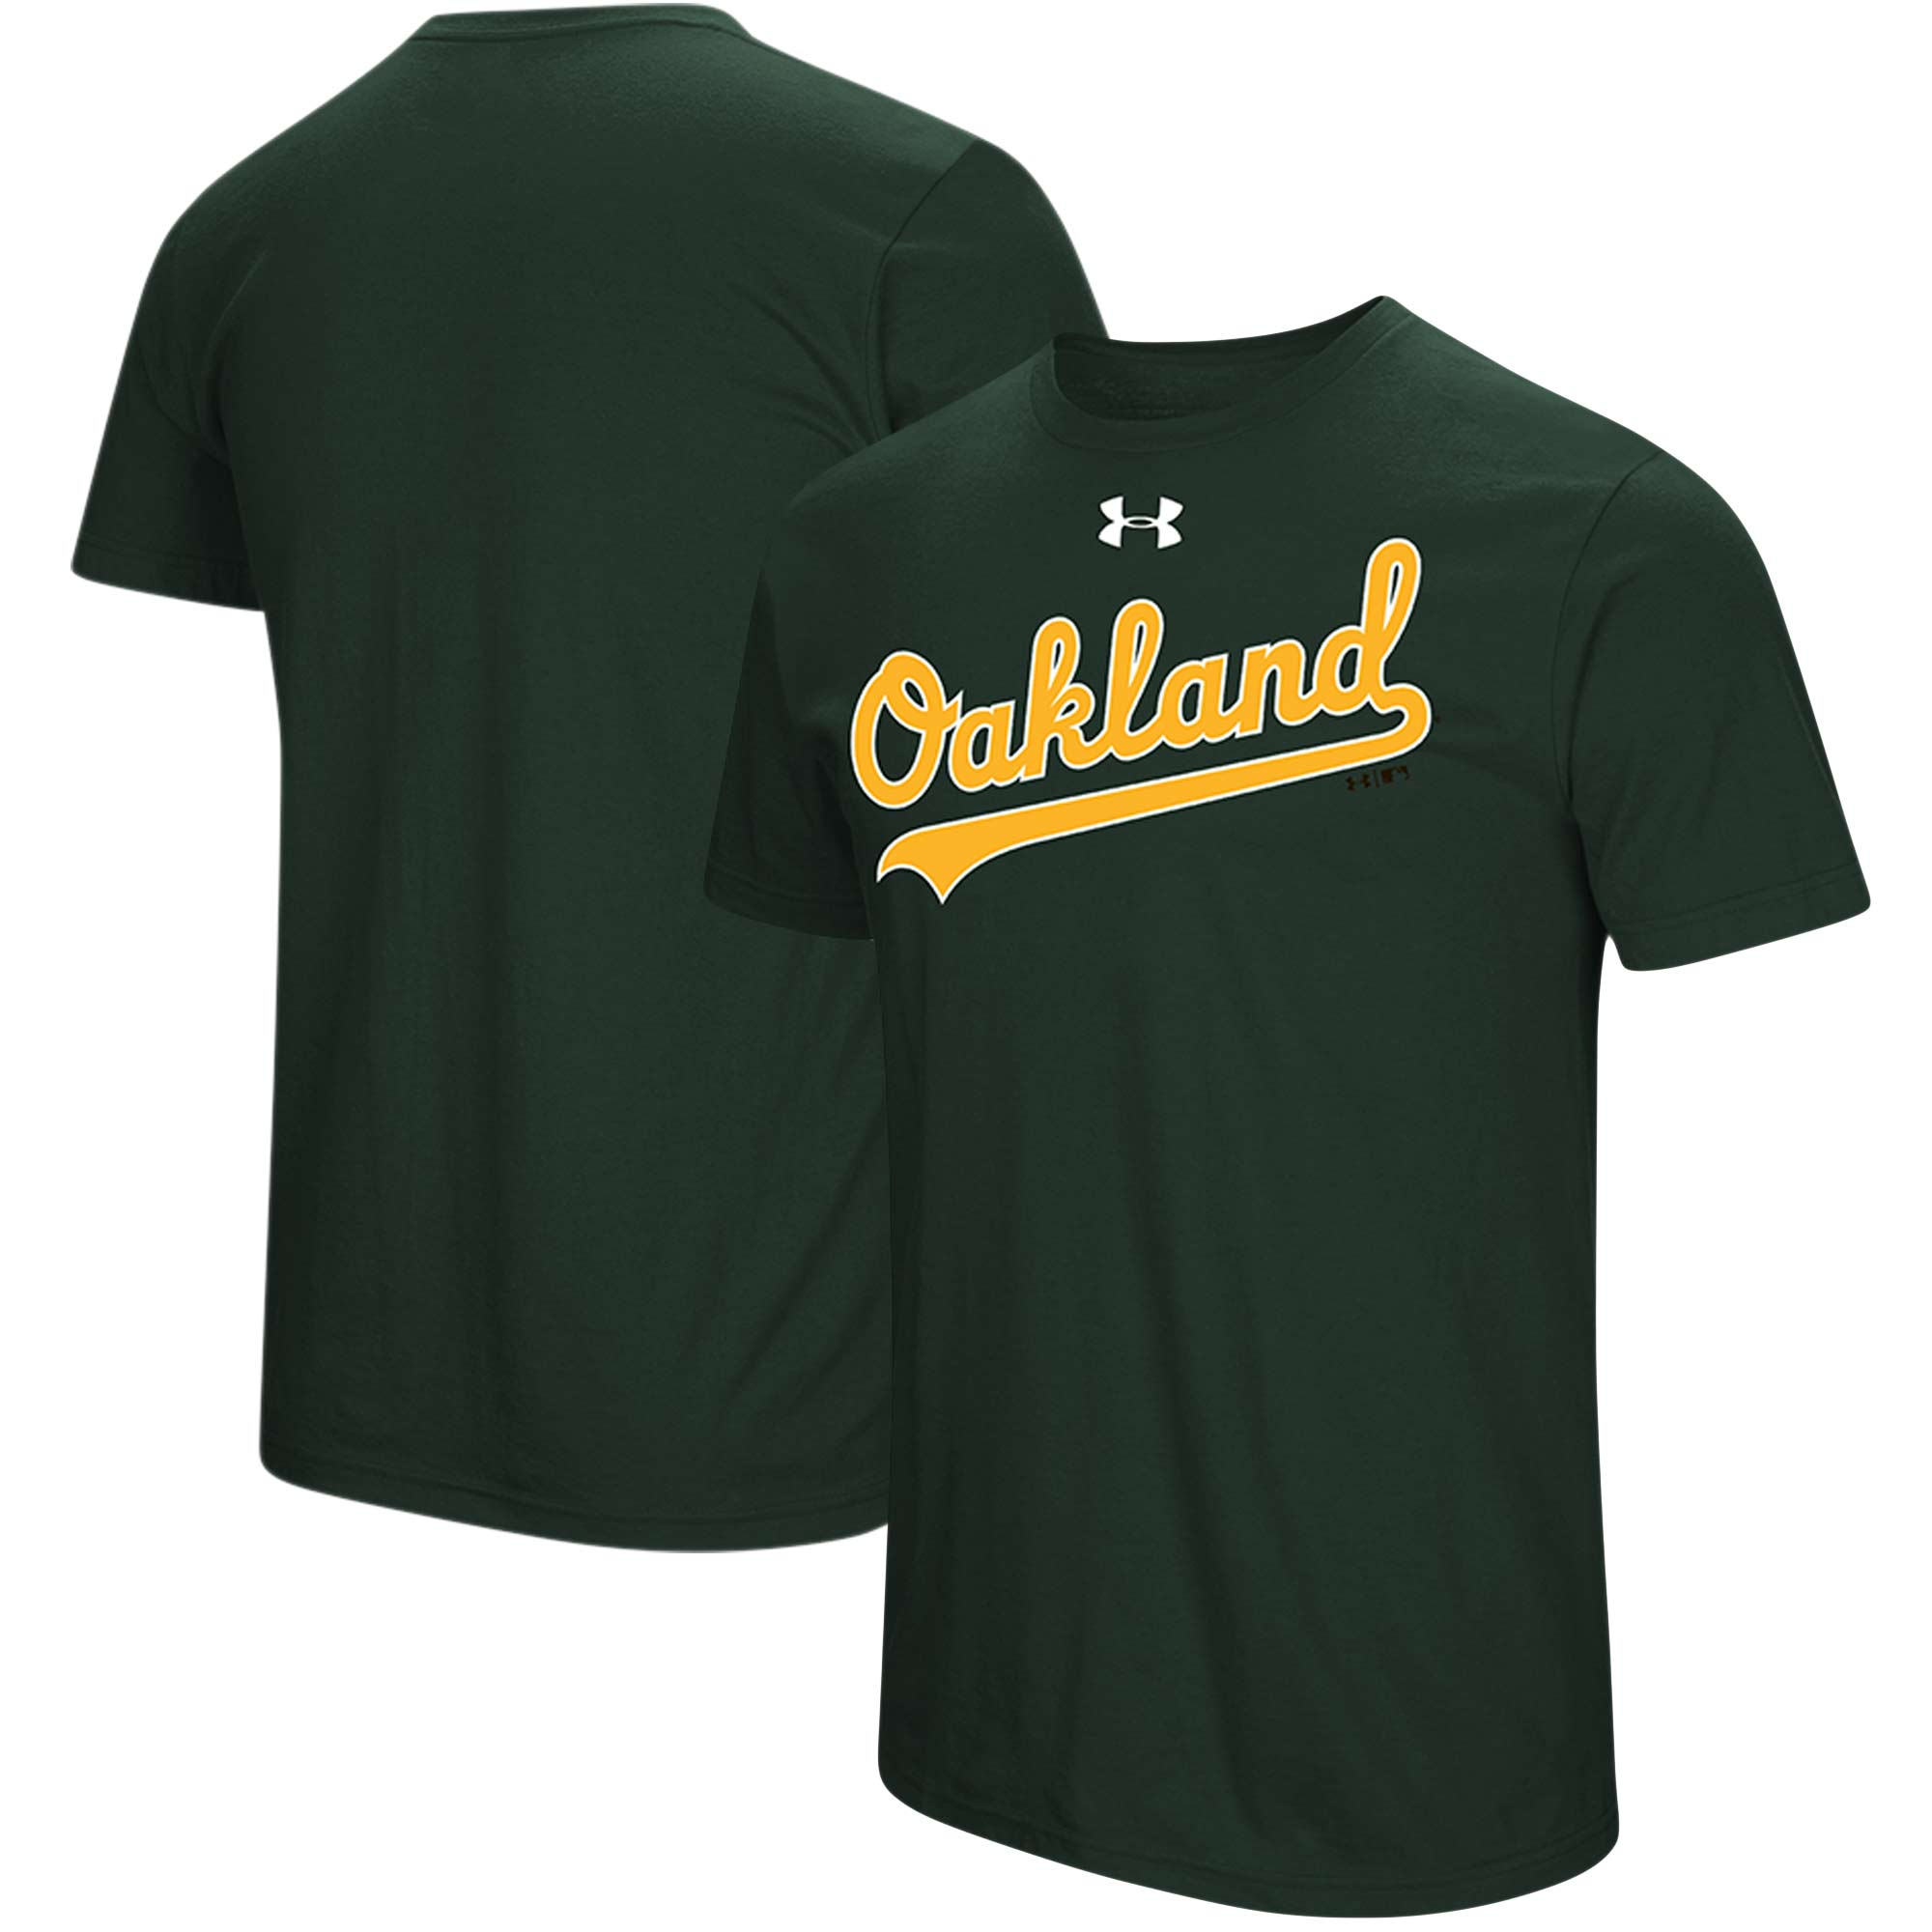 Oakland Athletics Under Armour Passion Road Team Font T-Shirt - Green